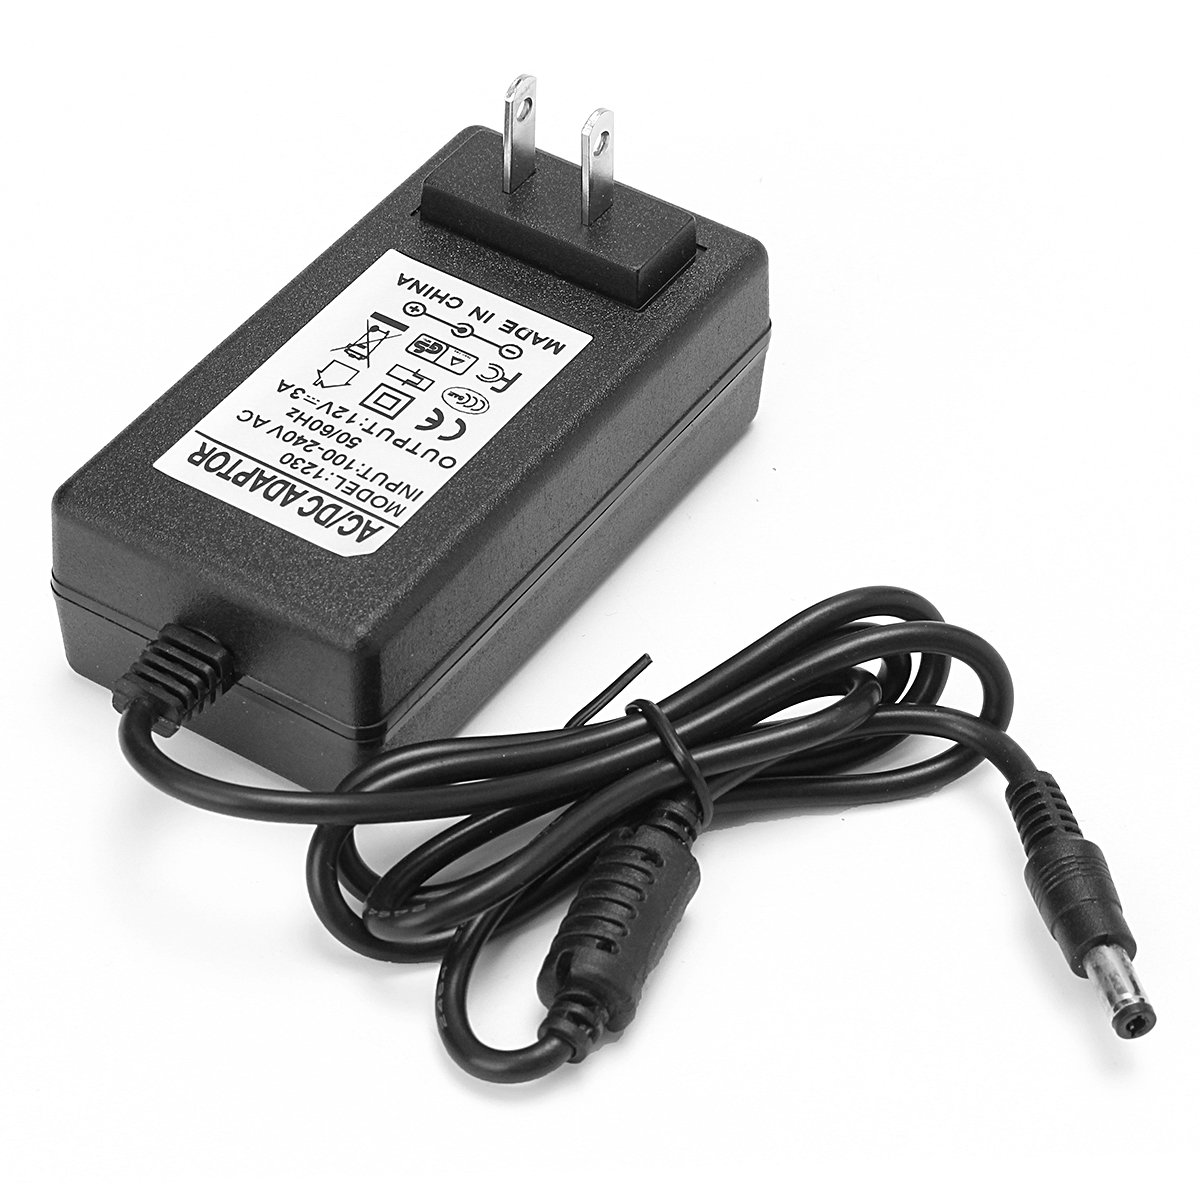 US 12V 3A 36W 5.5x2.1mm Power Adapter Supply